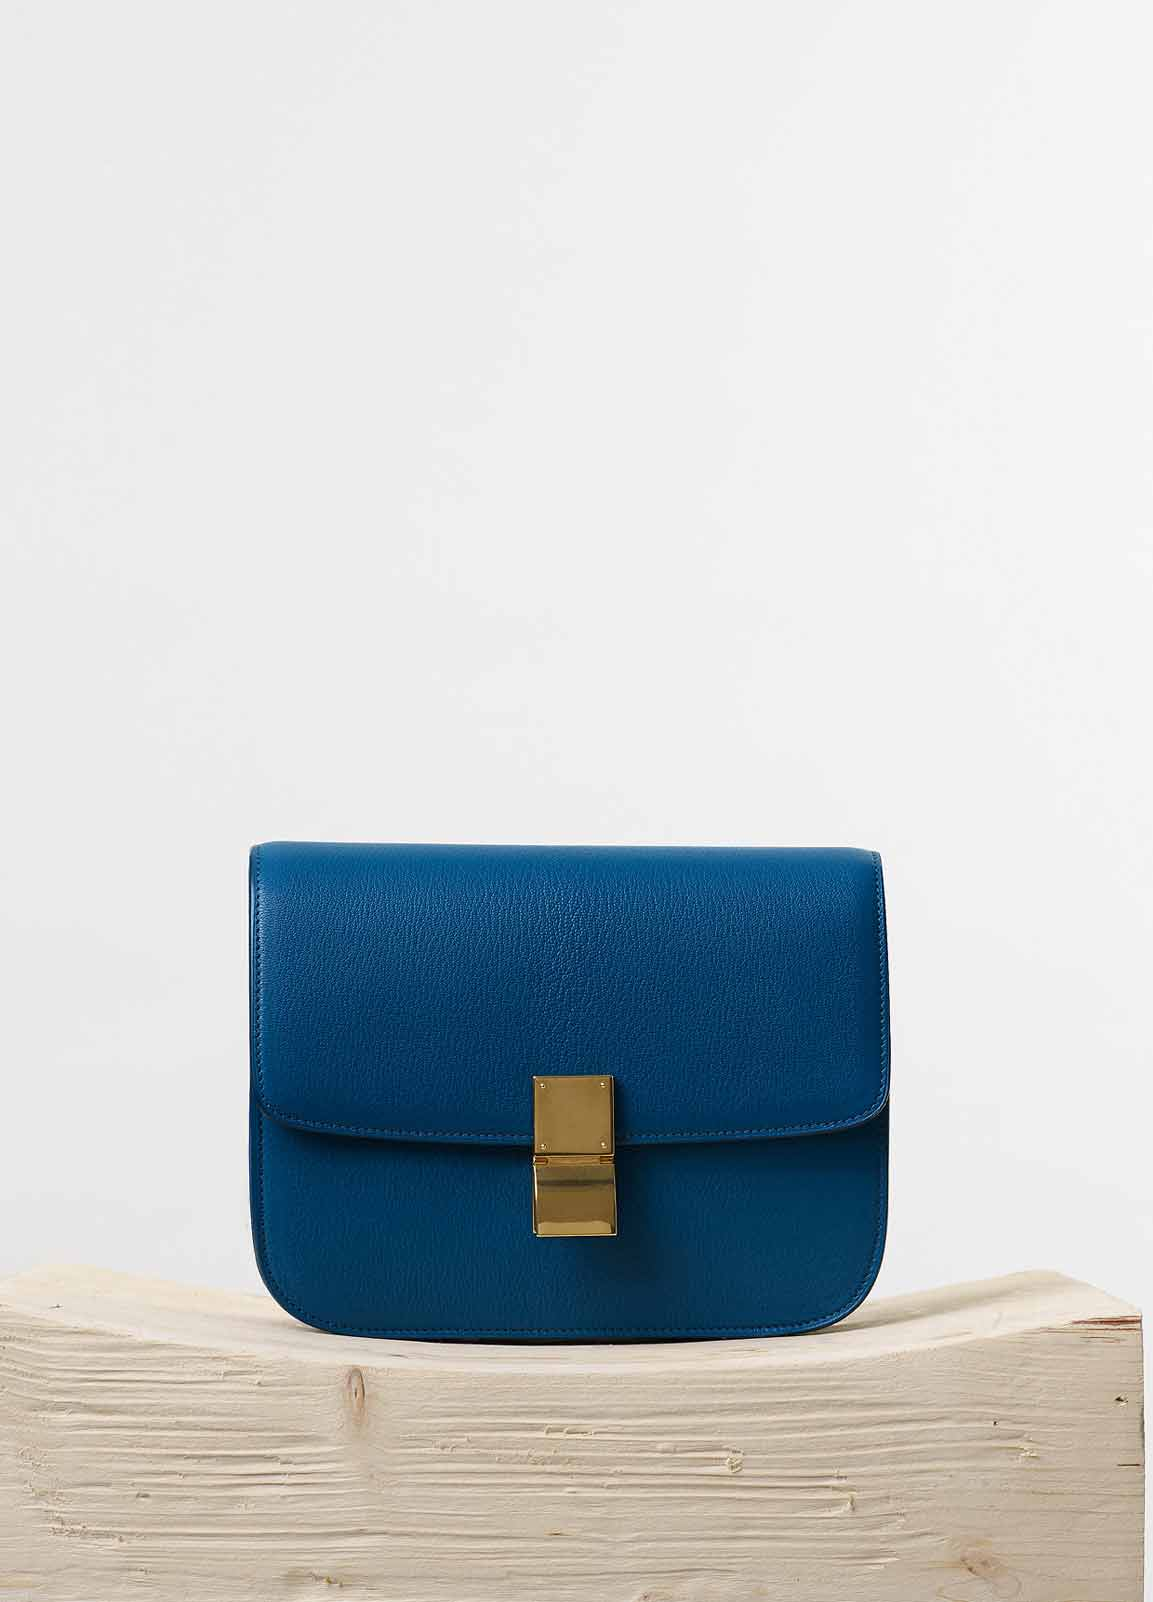 Celine Box Flap Bag Reference Guide Spotted Fashion